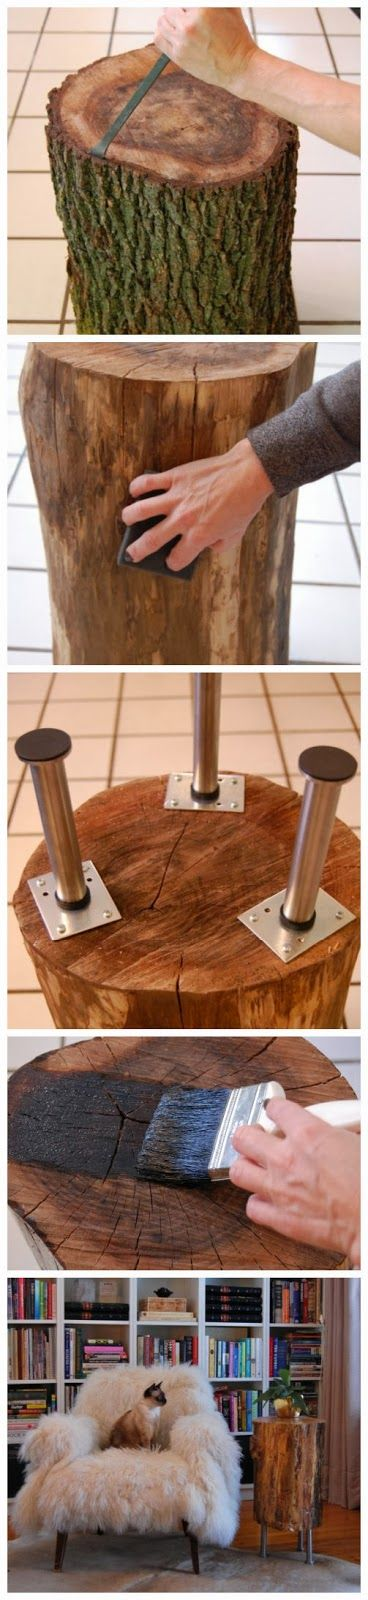 How to Make a Tree Stump Table